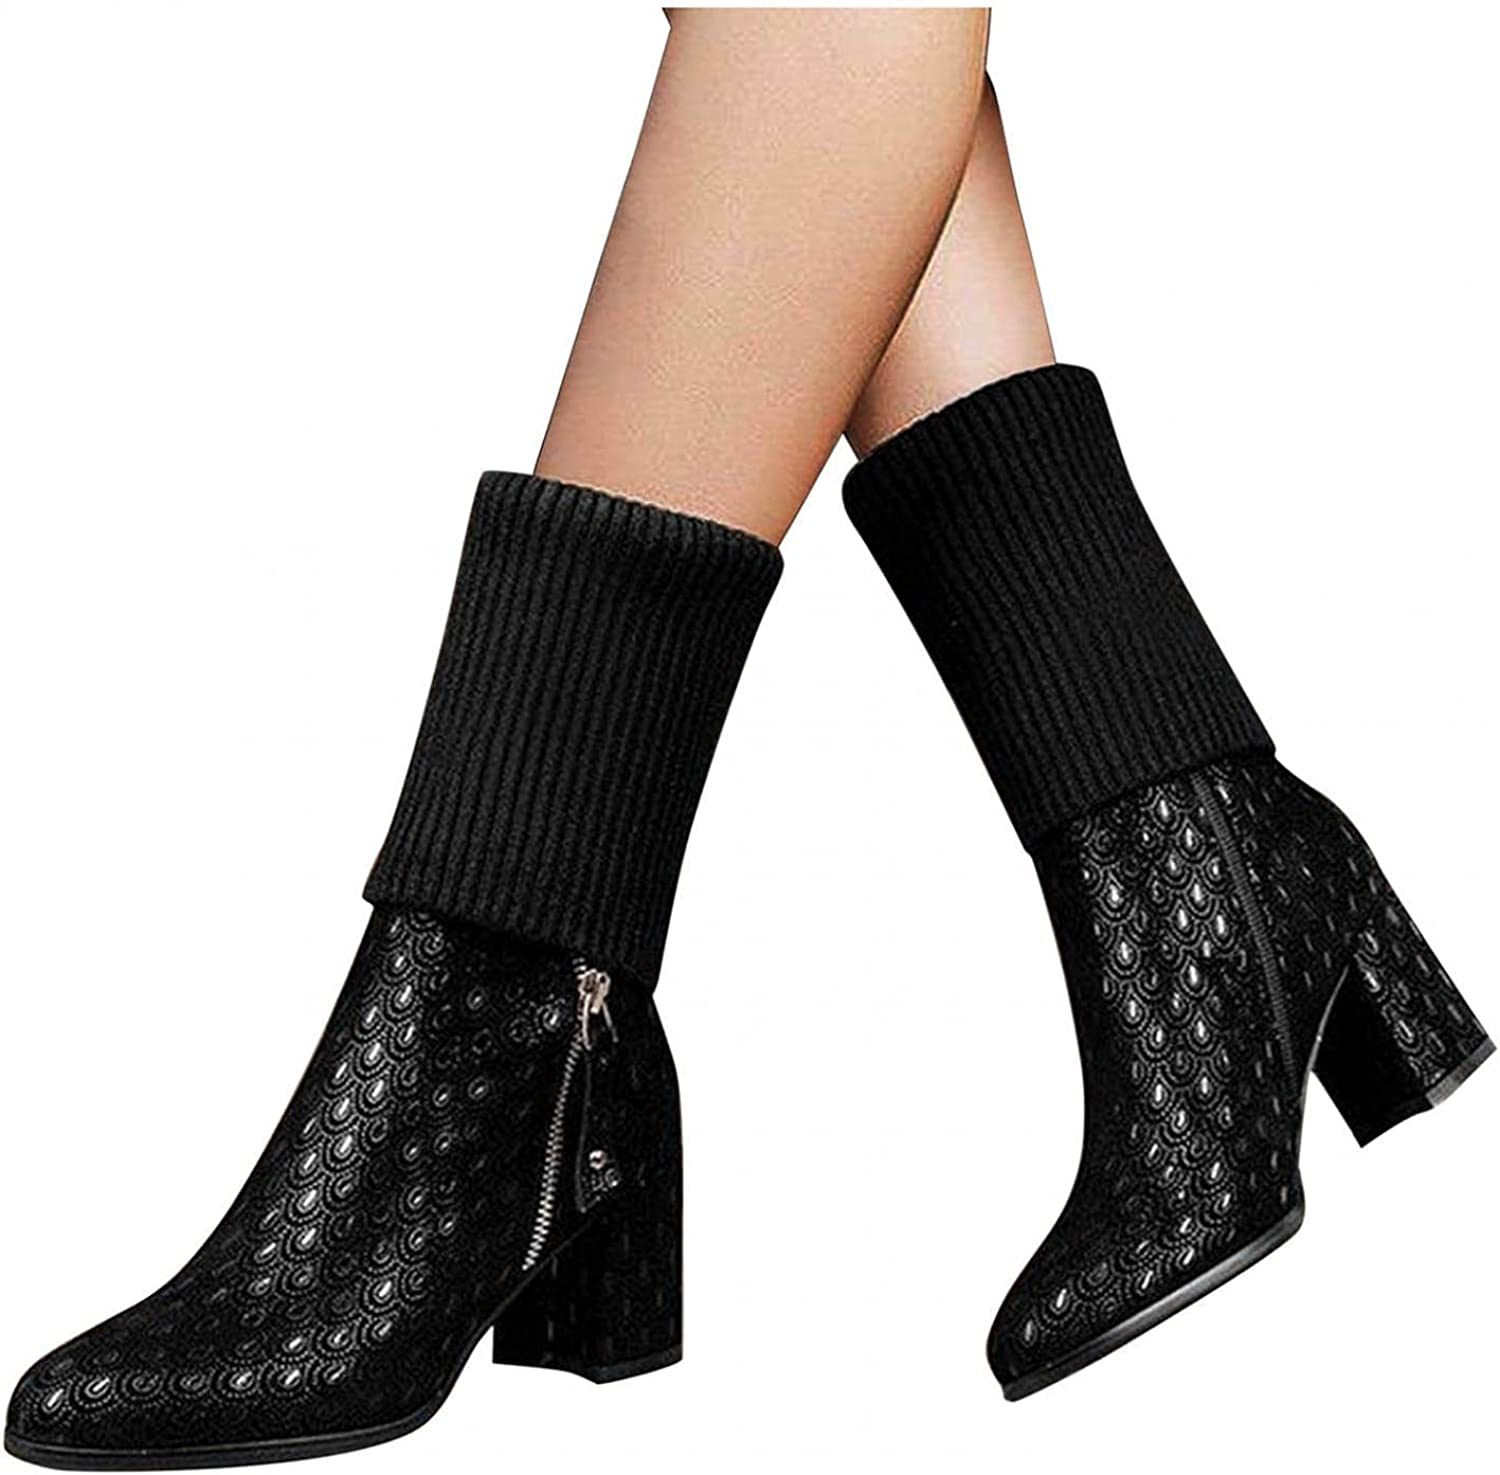 Niceast Boots for Women Fashion Stretch Knitted Cowgirl Boots Po